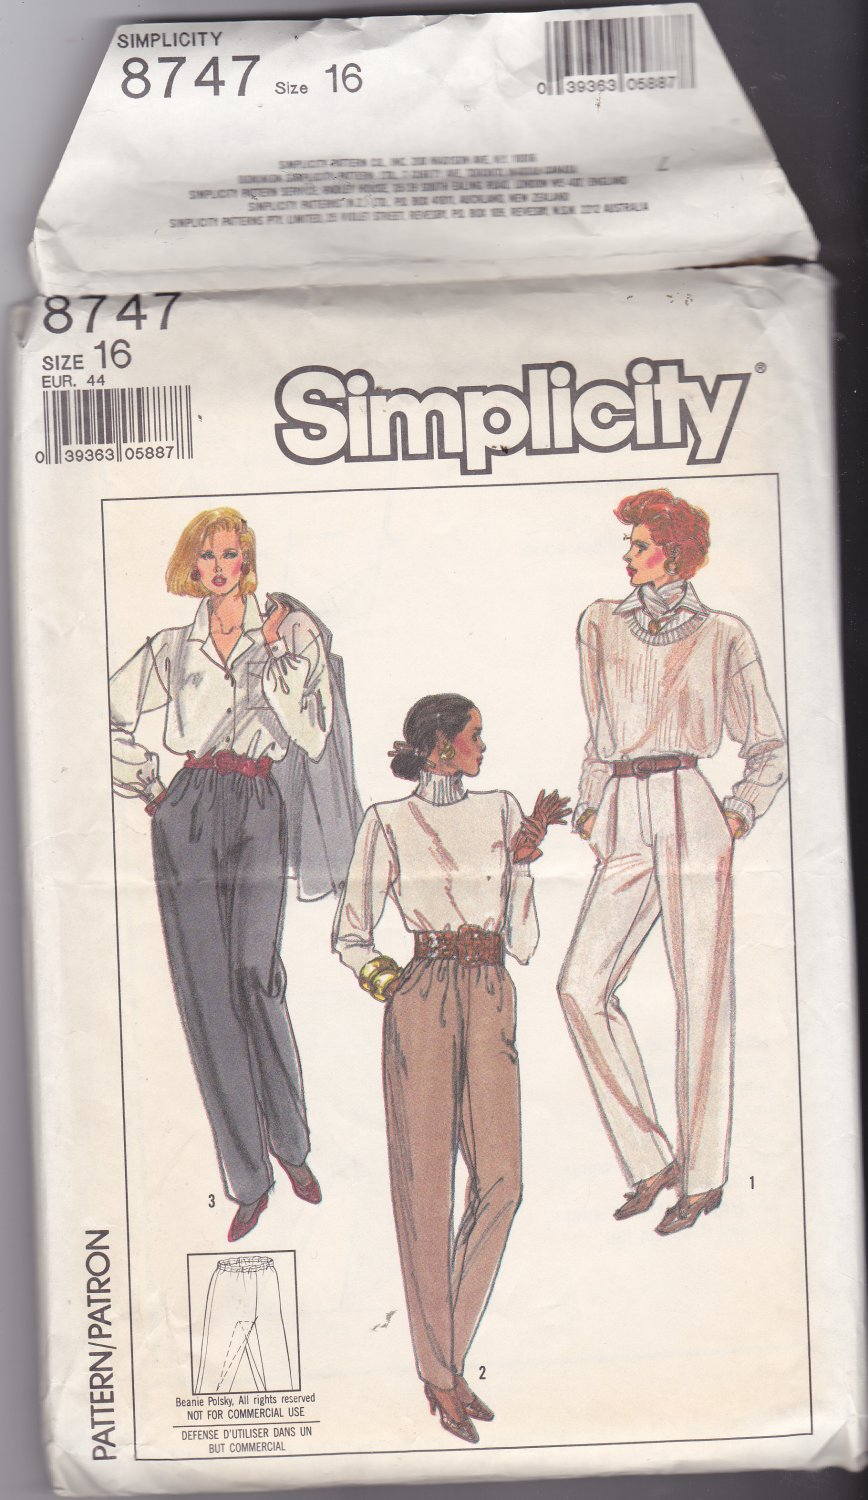 Simplicity 8747 size 16, may be missing pieces, 50 cents plus shipping